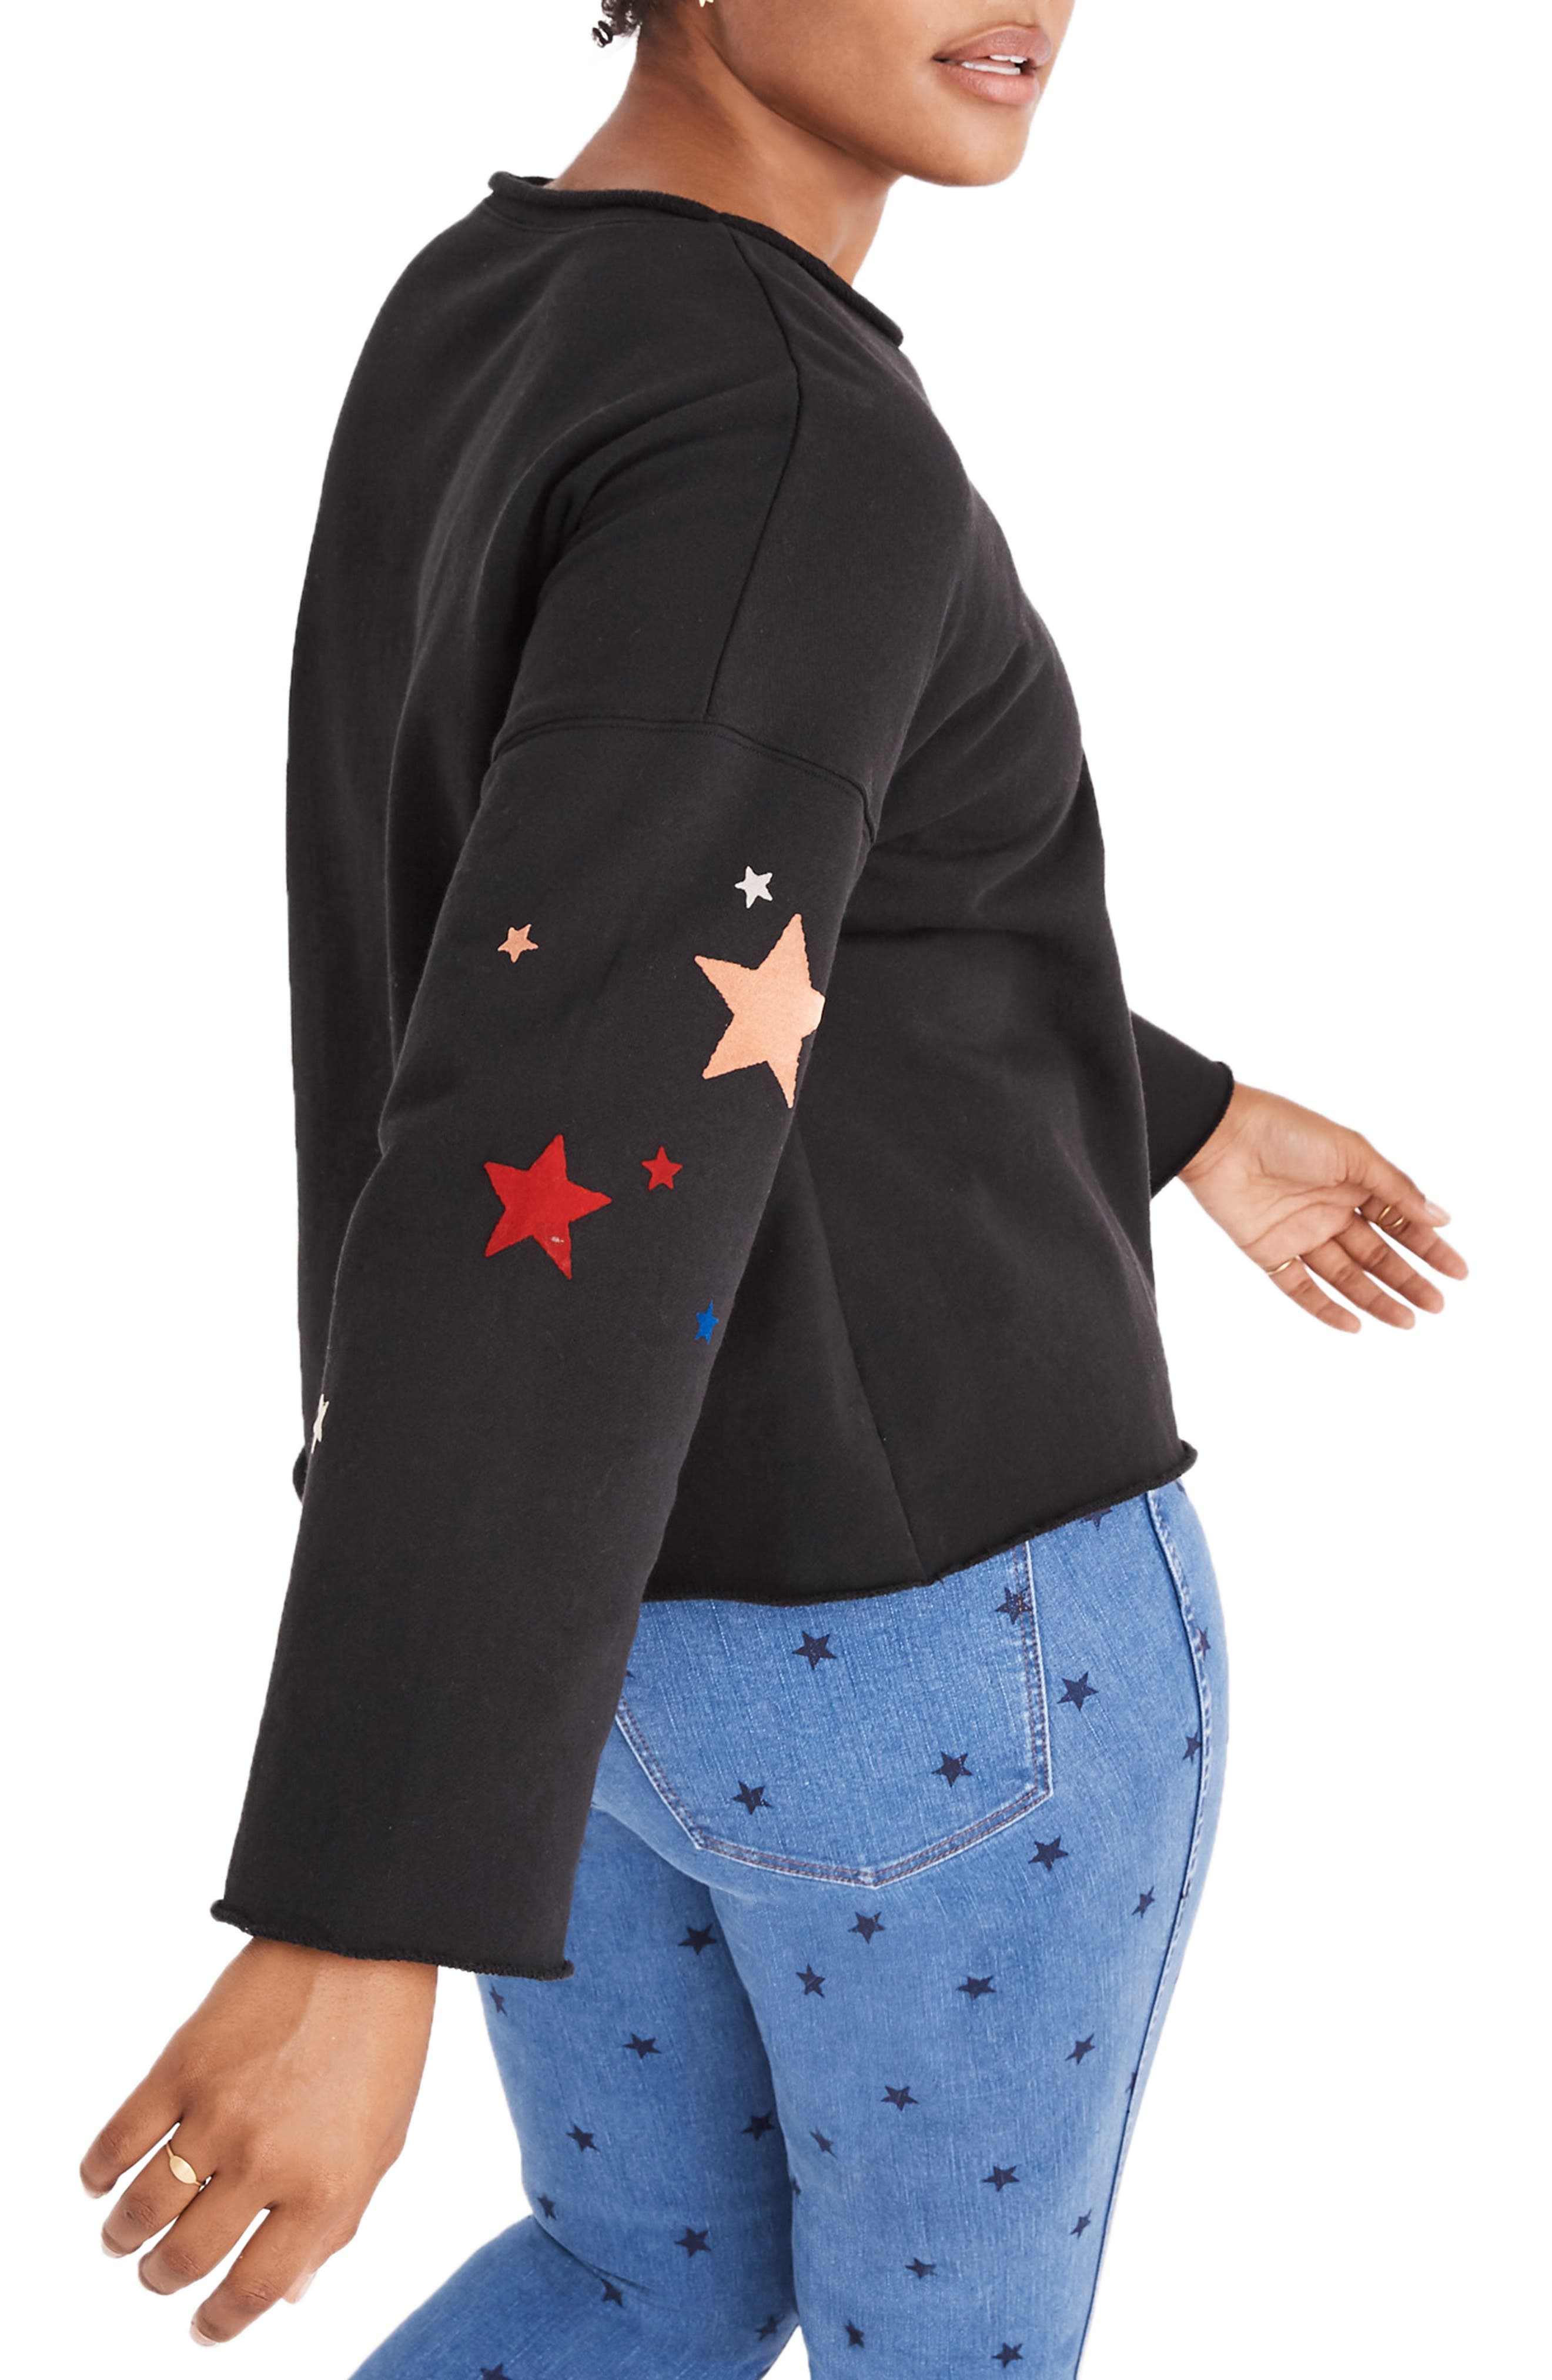 Starry Night Sweatshirt,                             Alternate thumbnail 6, color,                             CLASSIC BLACK